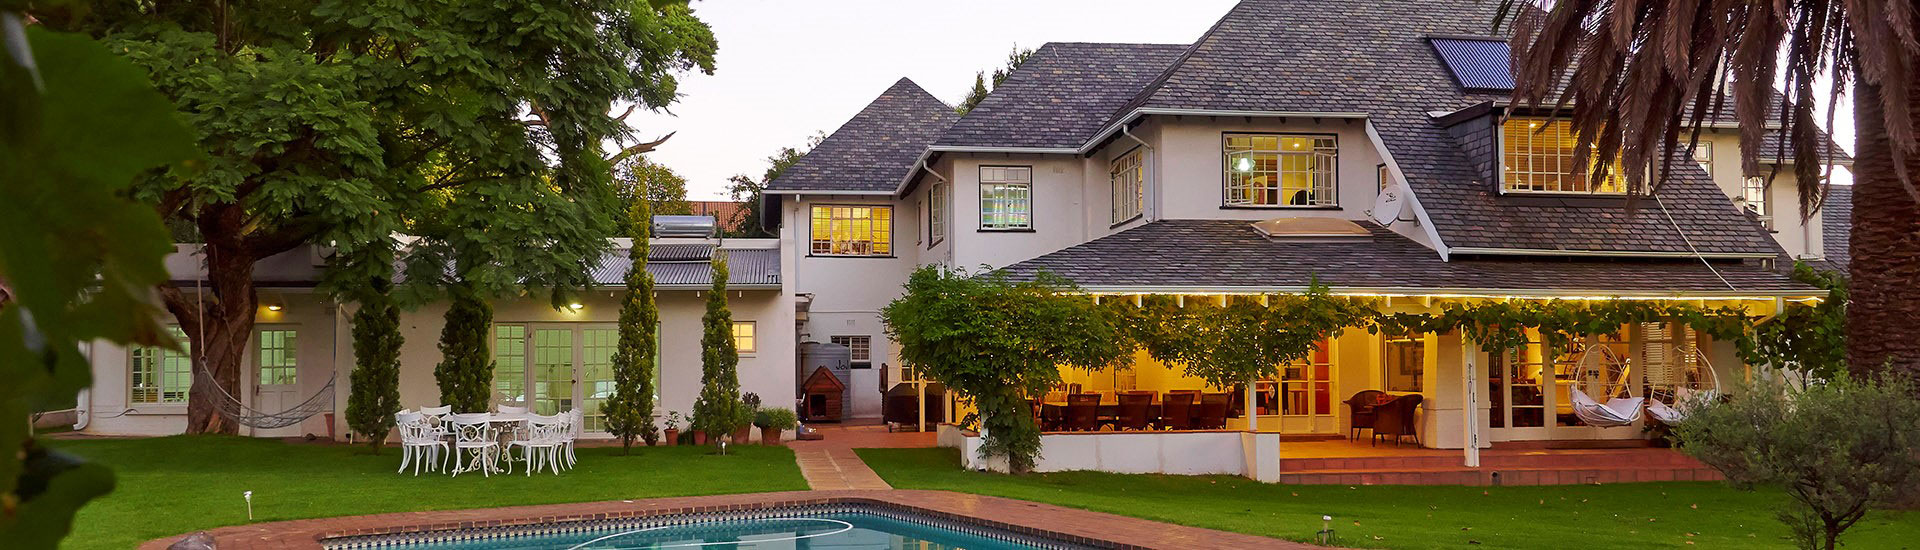 Tenstirling - Hotel and Bed and Breakfast - Johannesburg